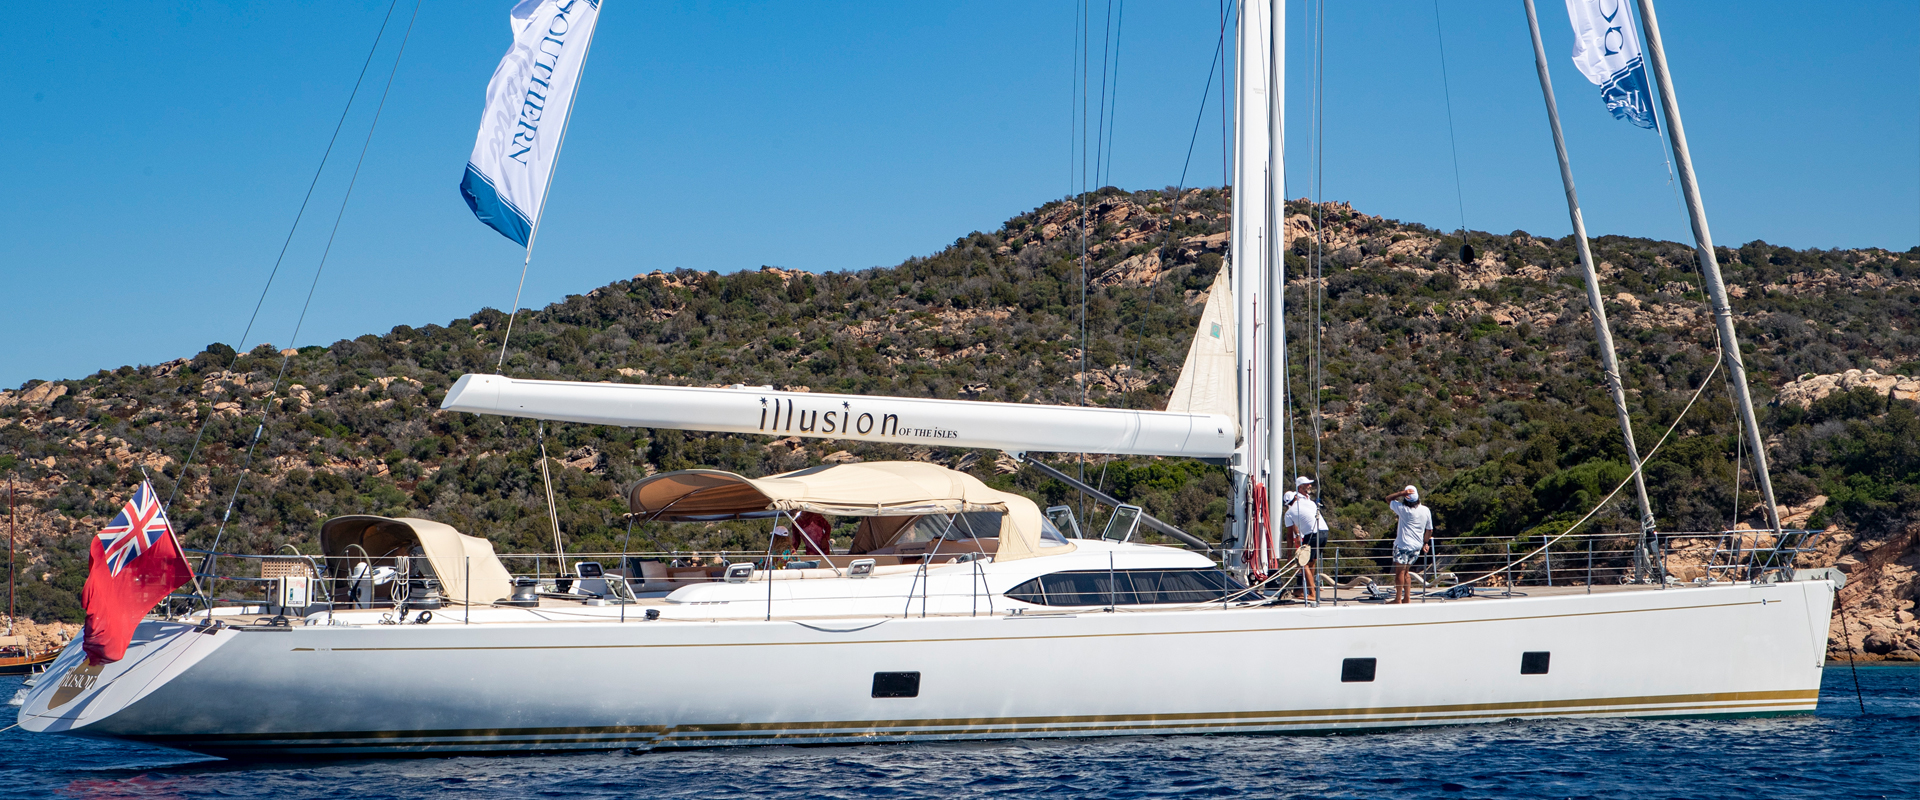 SW100 Illusion of the Isles_Southern Wind Yachts for sale